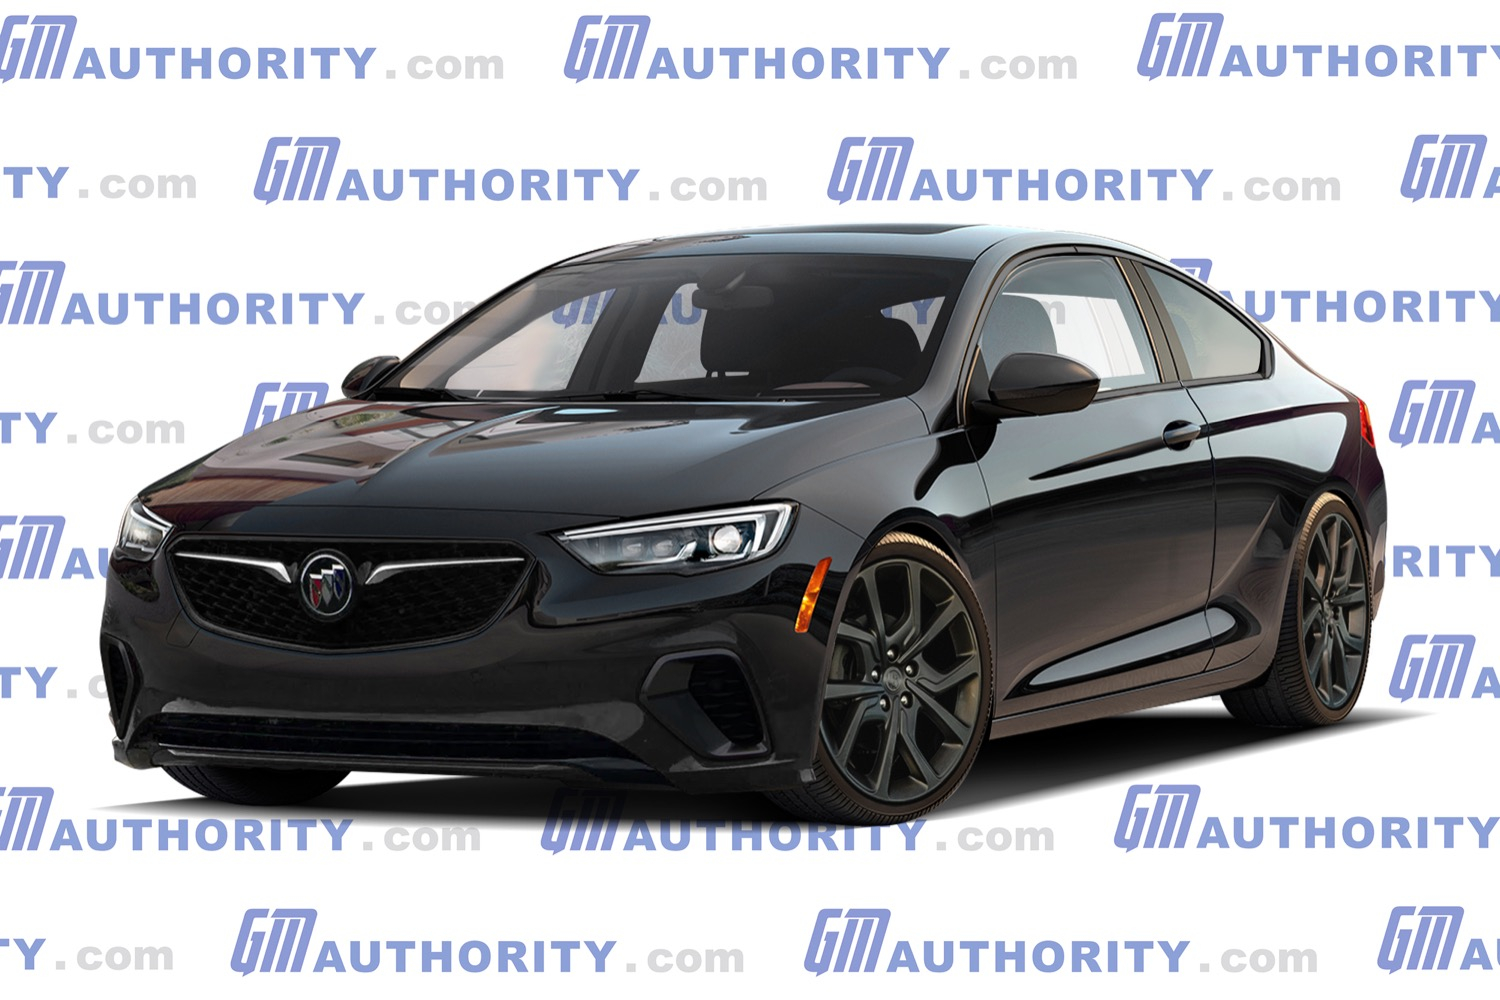 Modern Buick Regal Gnx Rendered | Gm Authority When Will The New 2022 Buick Regal Be Available